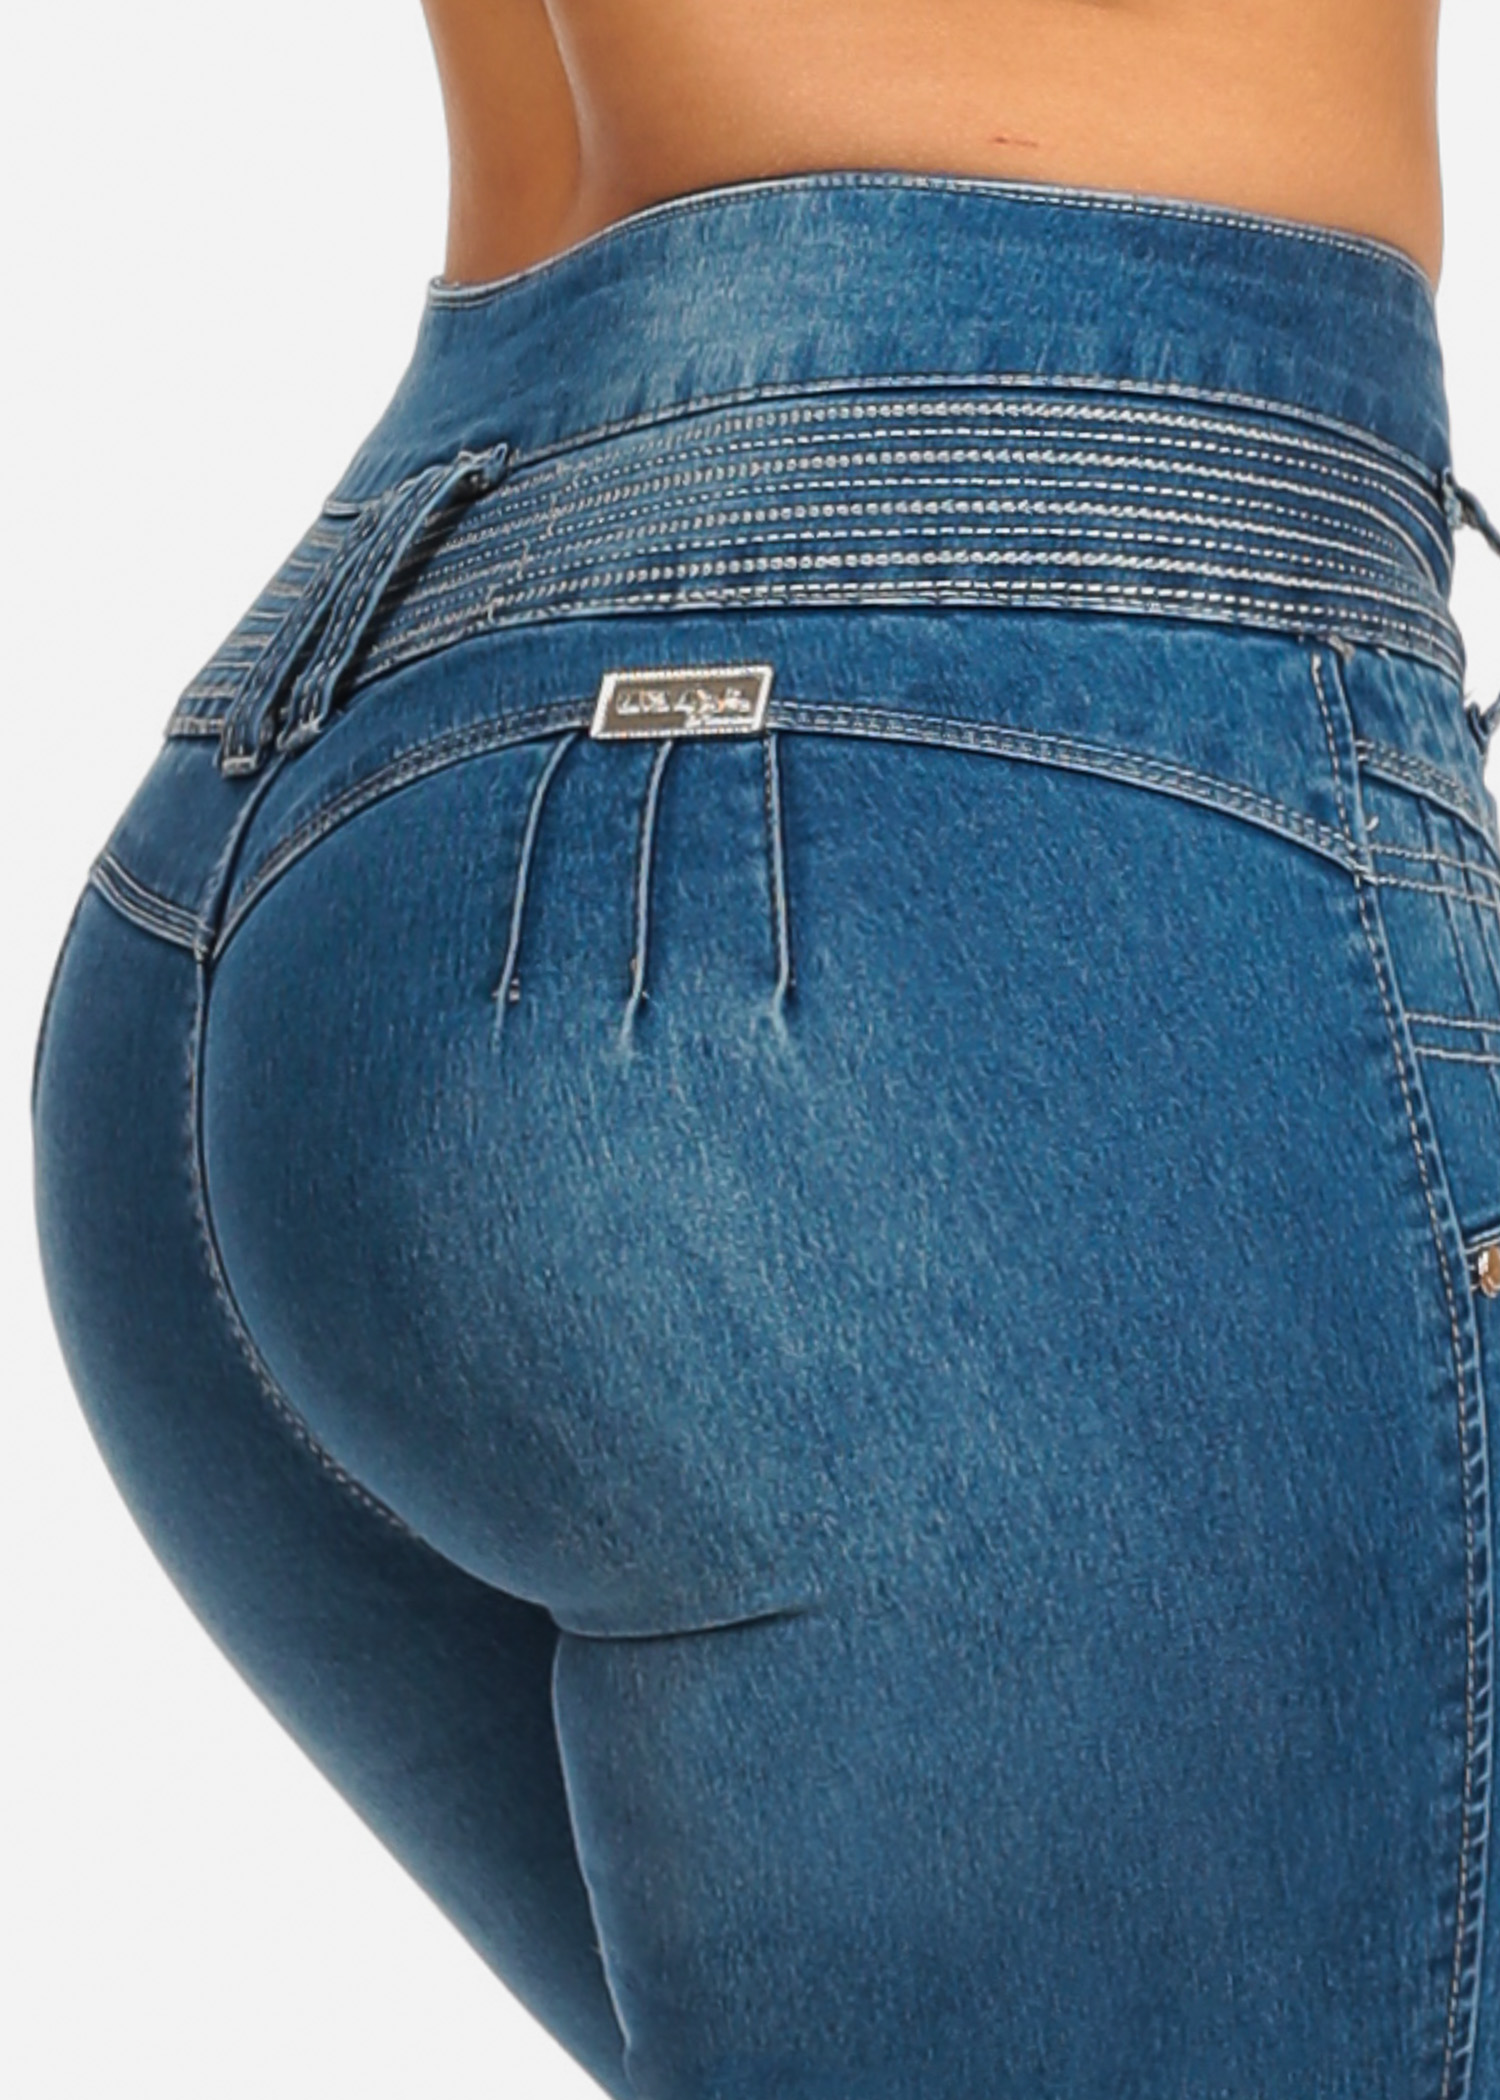 Womens Juniors Blue Light Wash Butt Lifting Push Up 4 Button Closure Colombian Design Stretchy Skinny Jeans 10121V